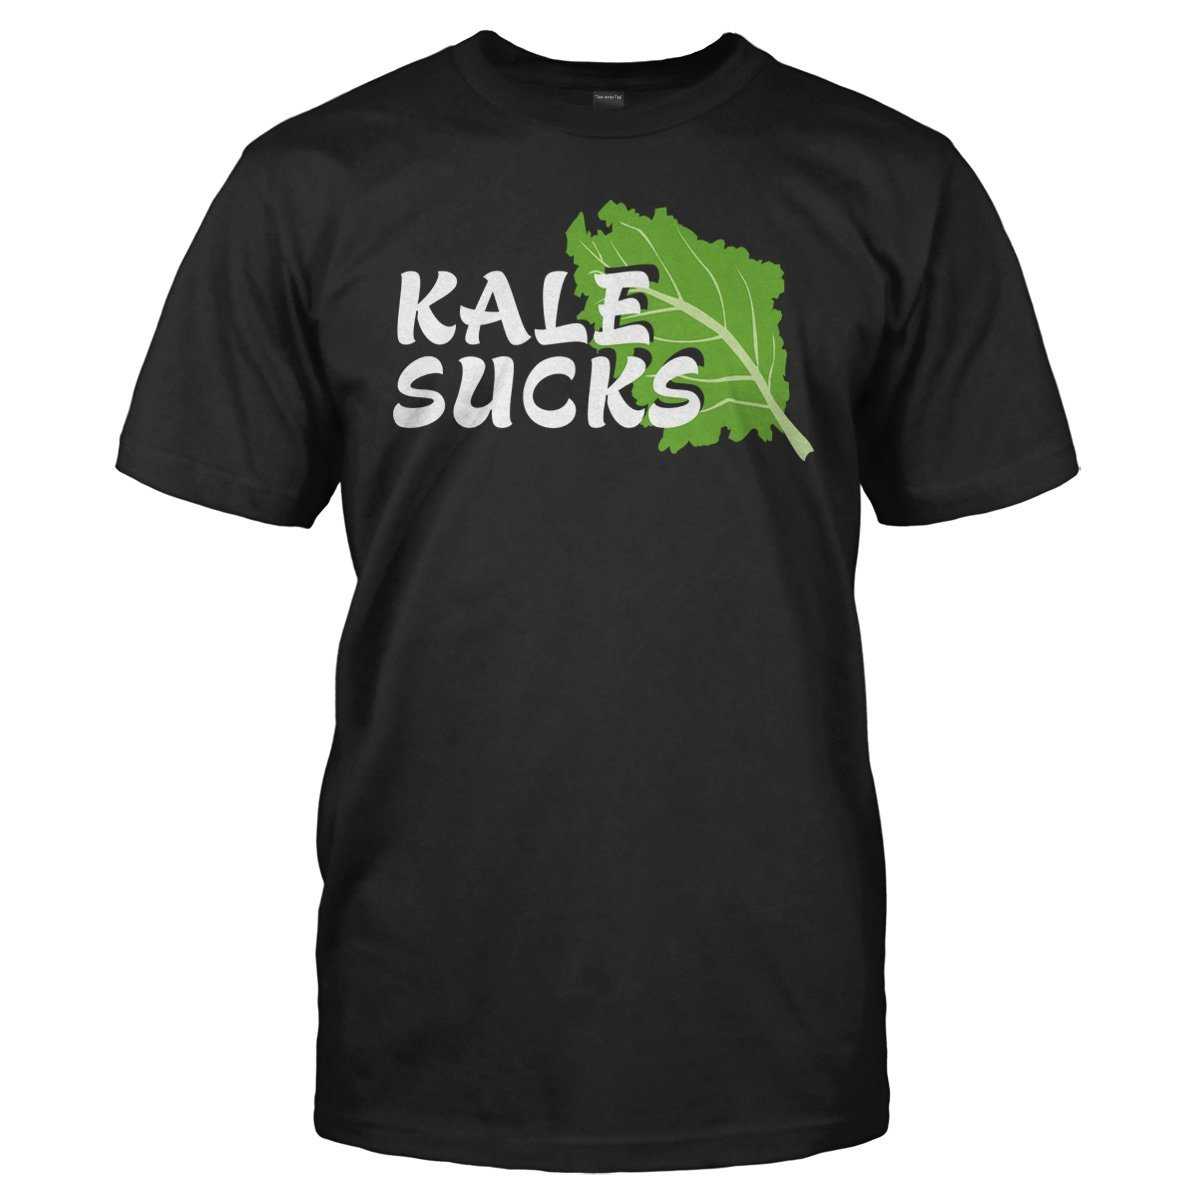 Kale Sucks - T Shirt